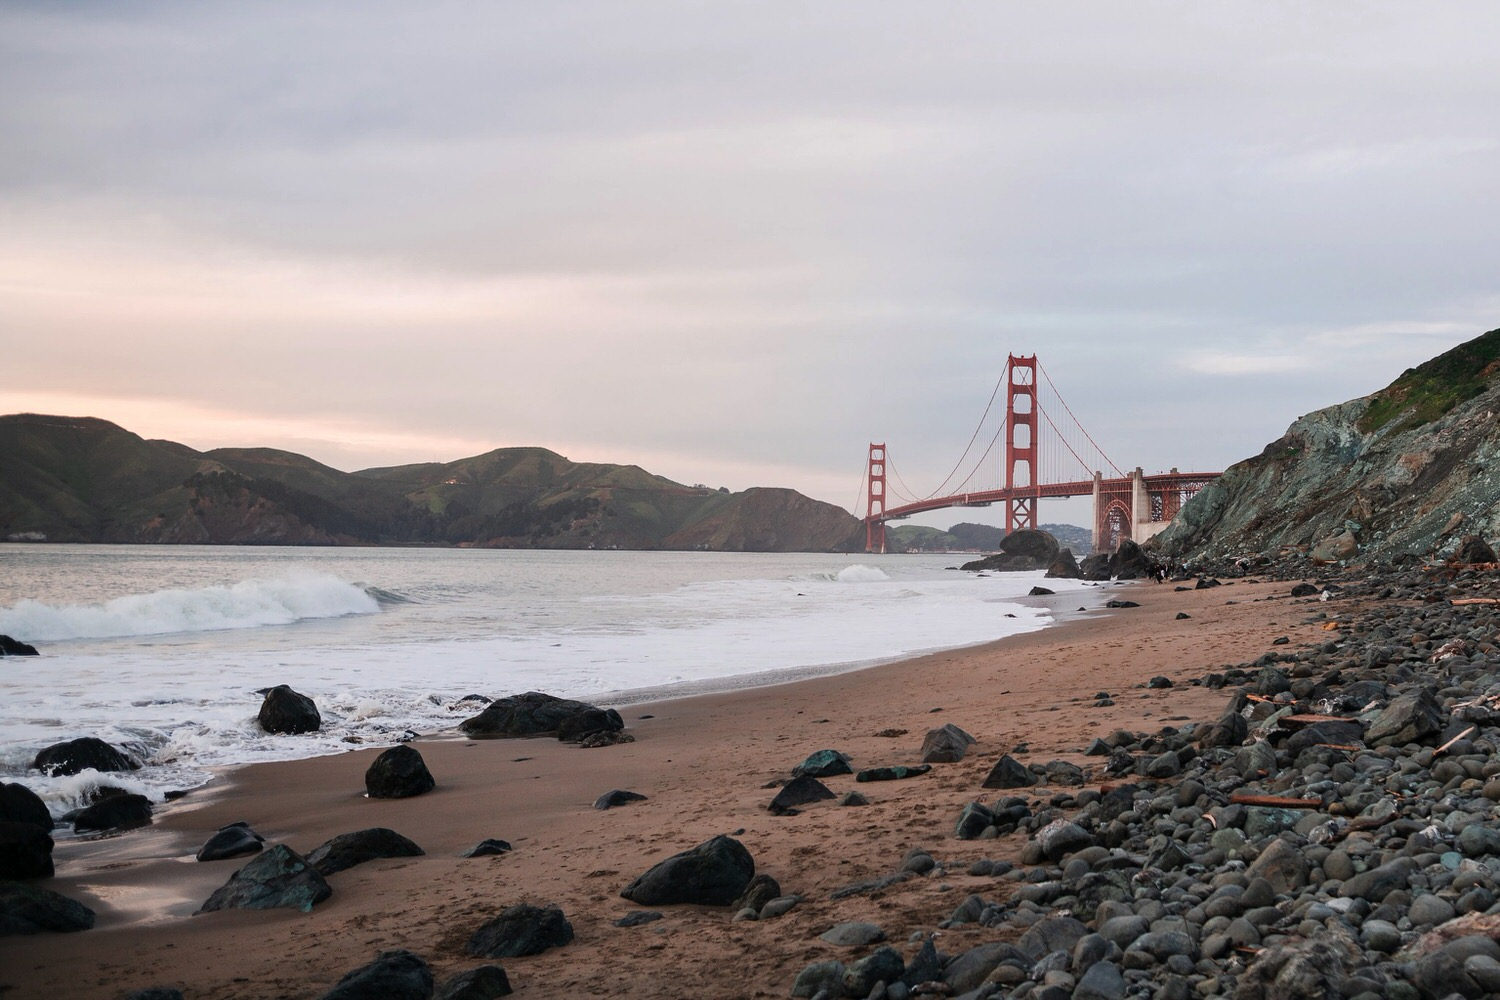 Overlooking Marshall's Beach to the Golden Gate Bridge